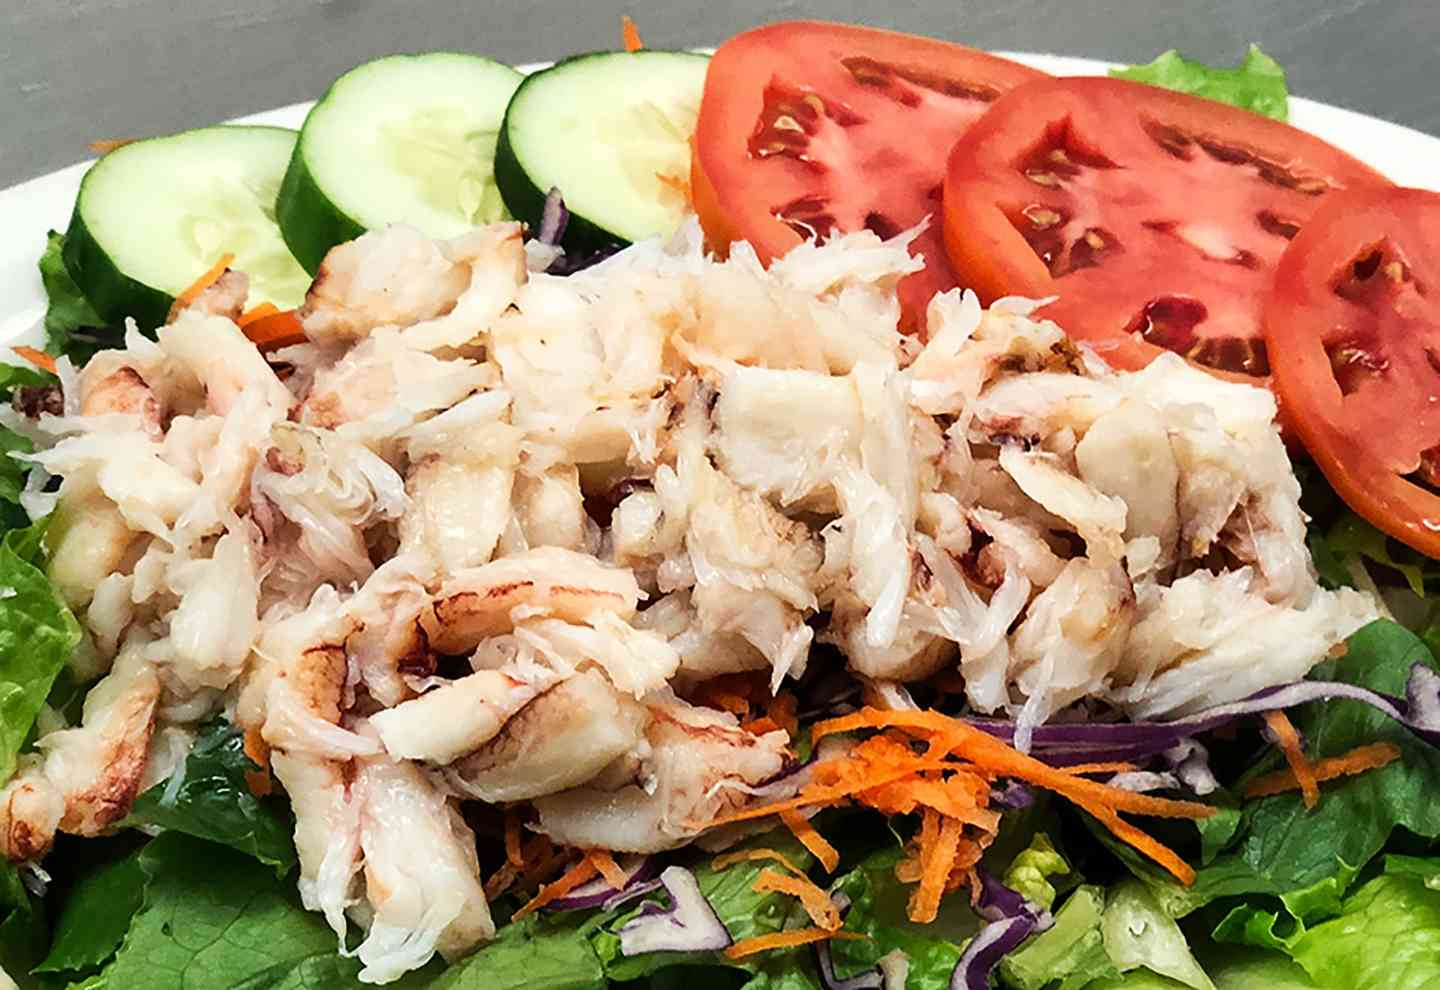 Chilled Rock Crab Meat Entree Salad